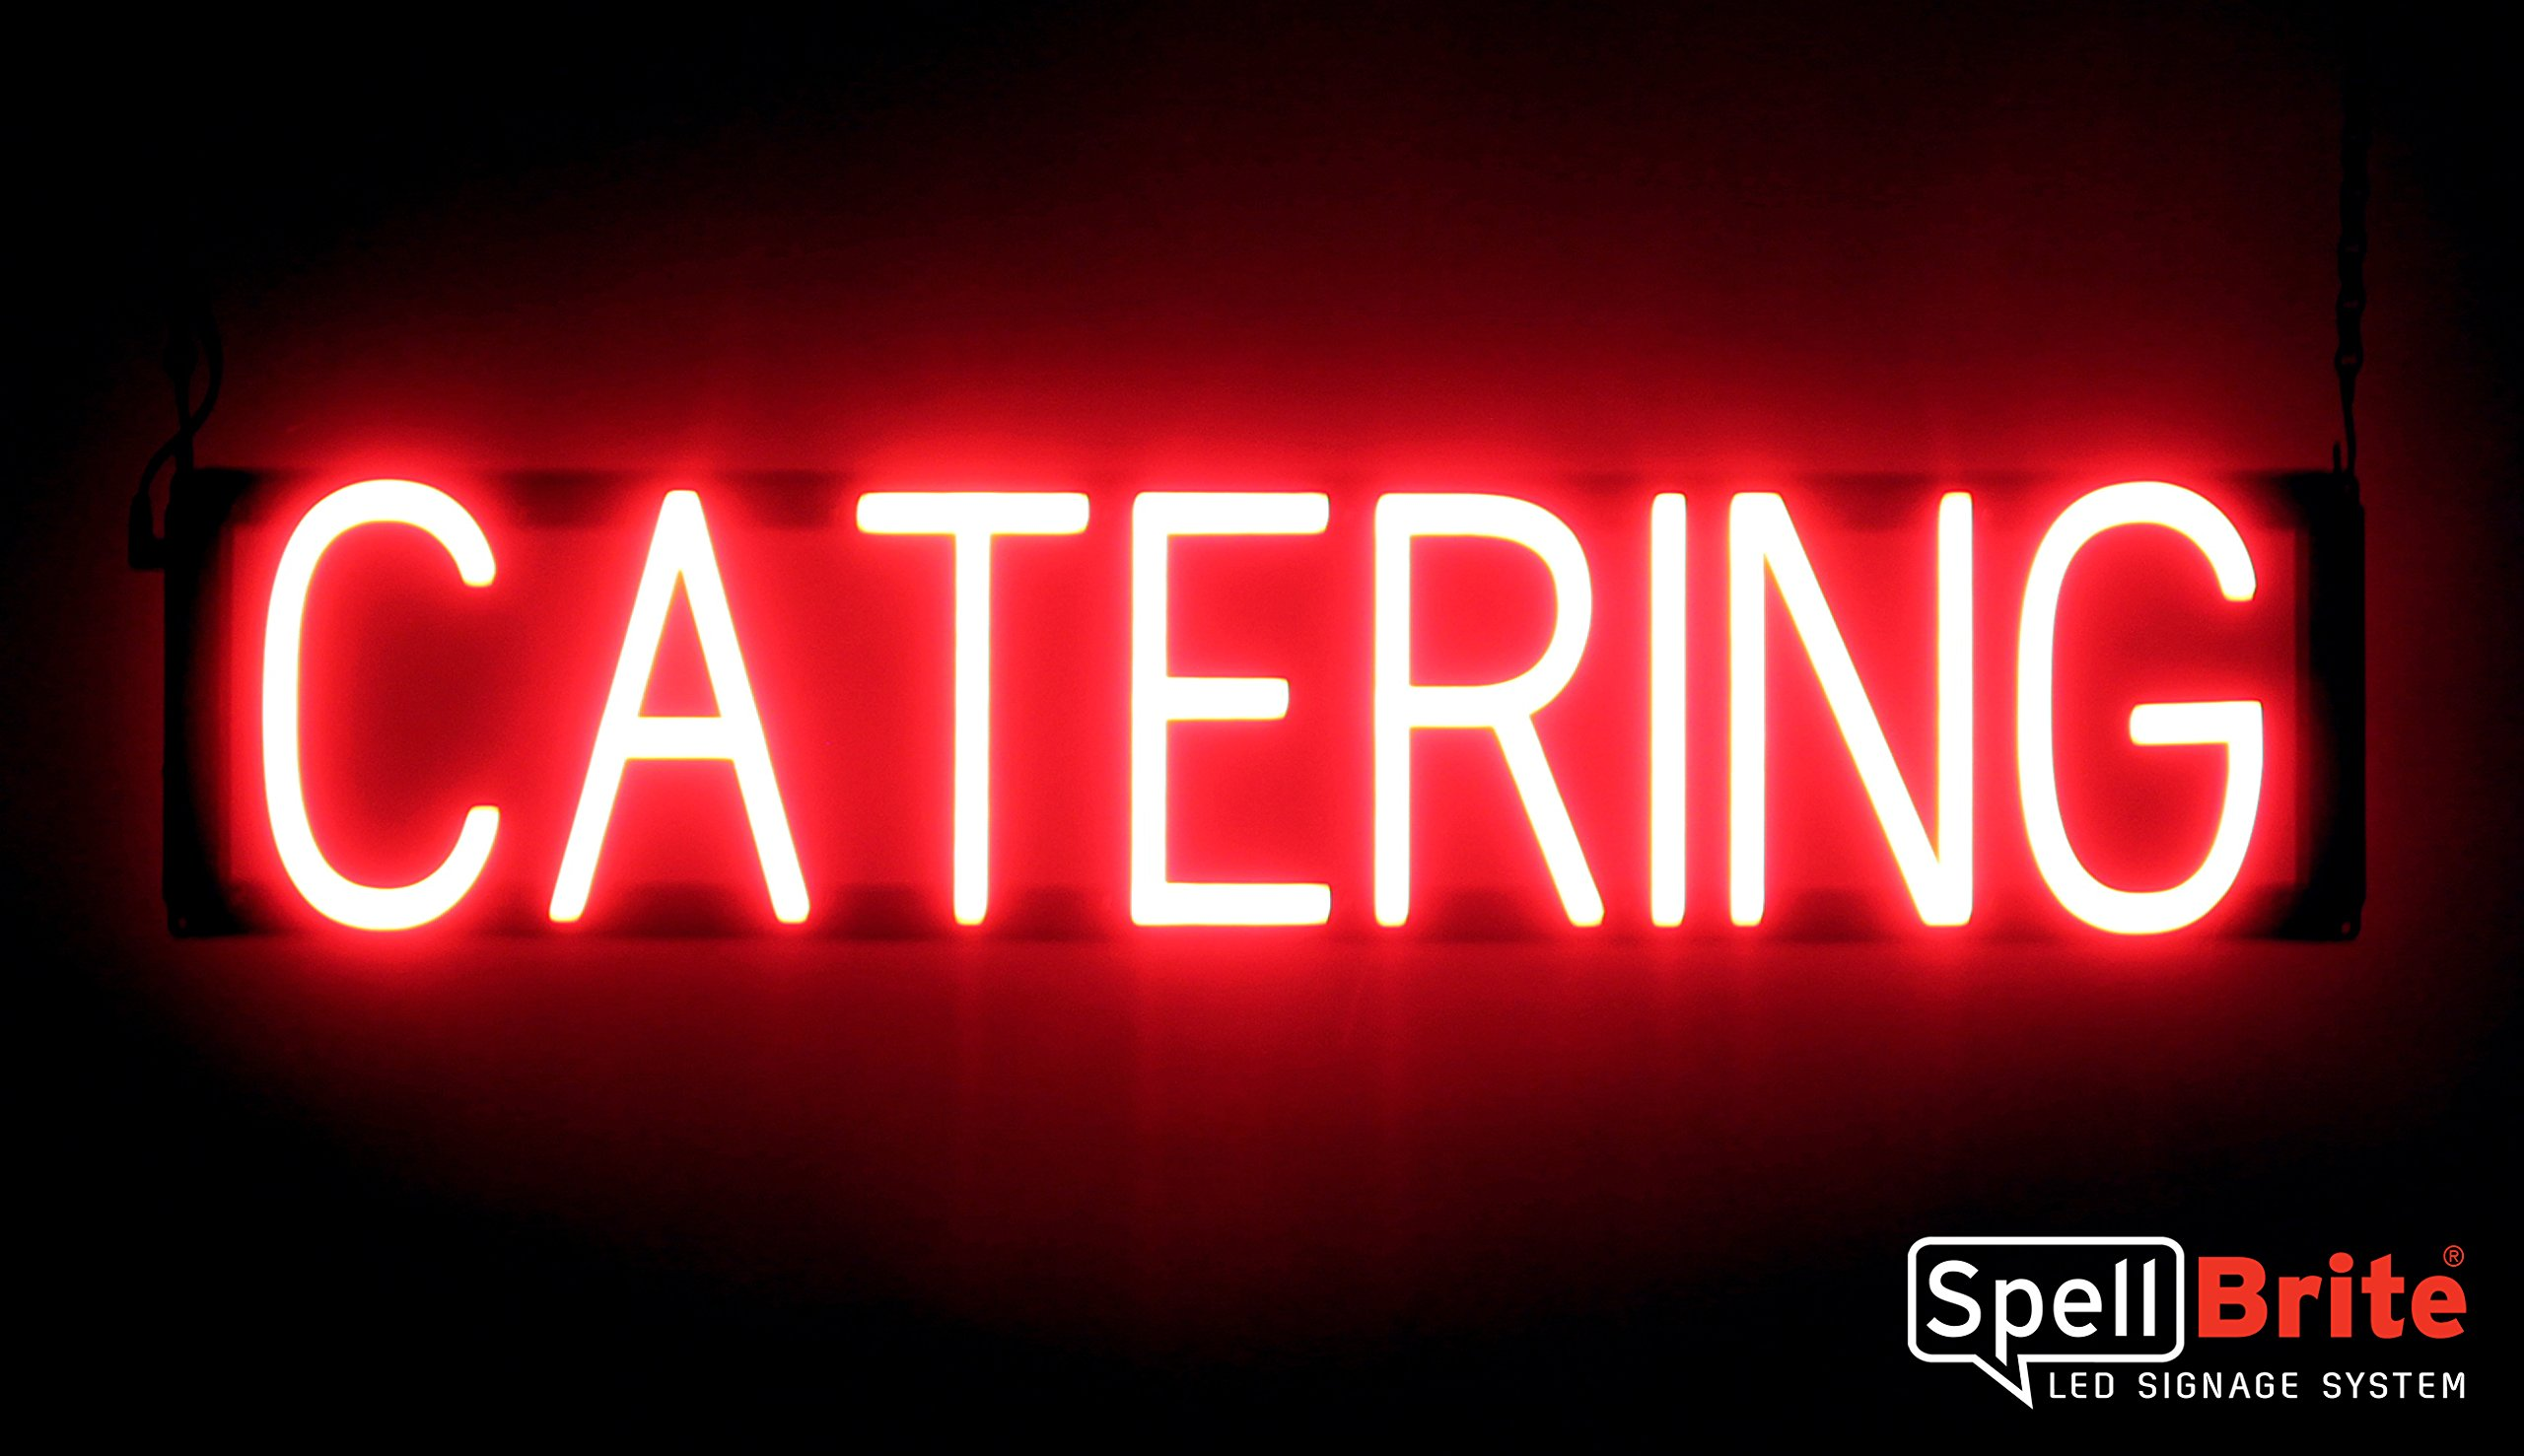 SpellBrite Ultra-Bright CATERING Sign Neon-LED Sign (Neon look, LED performance) by SpellBrite LED Signage System